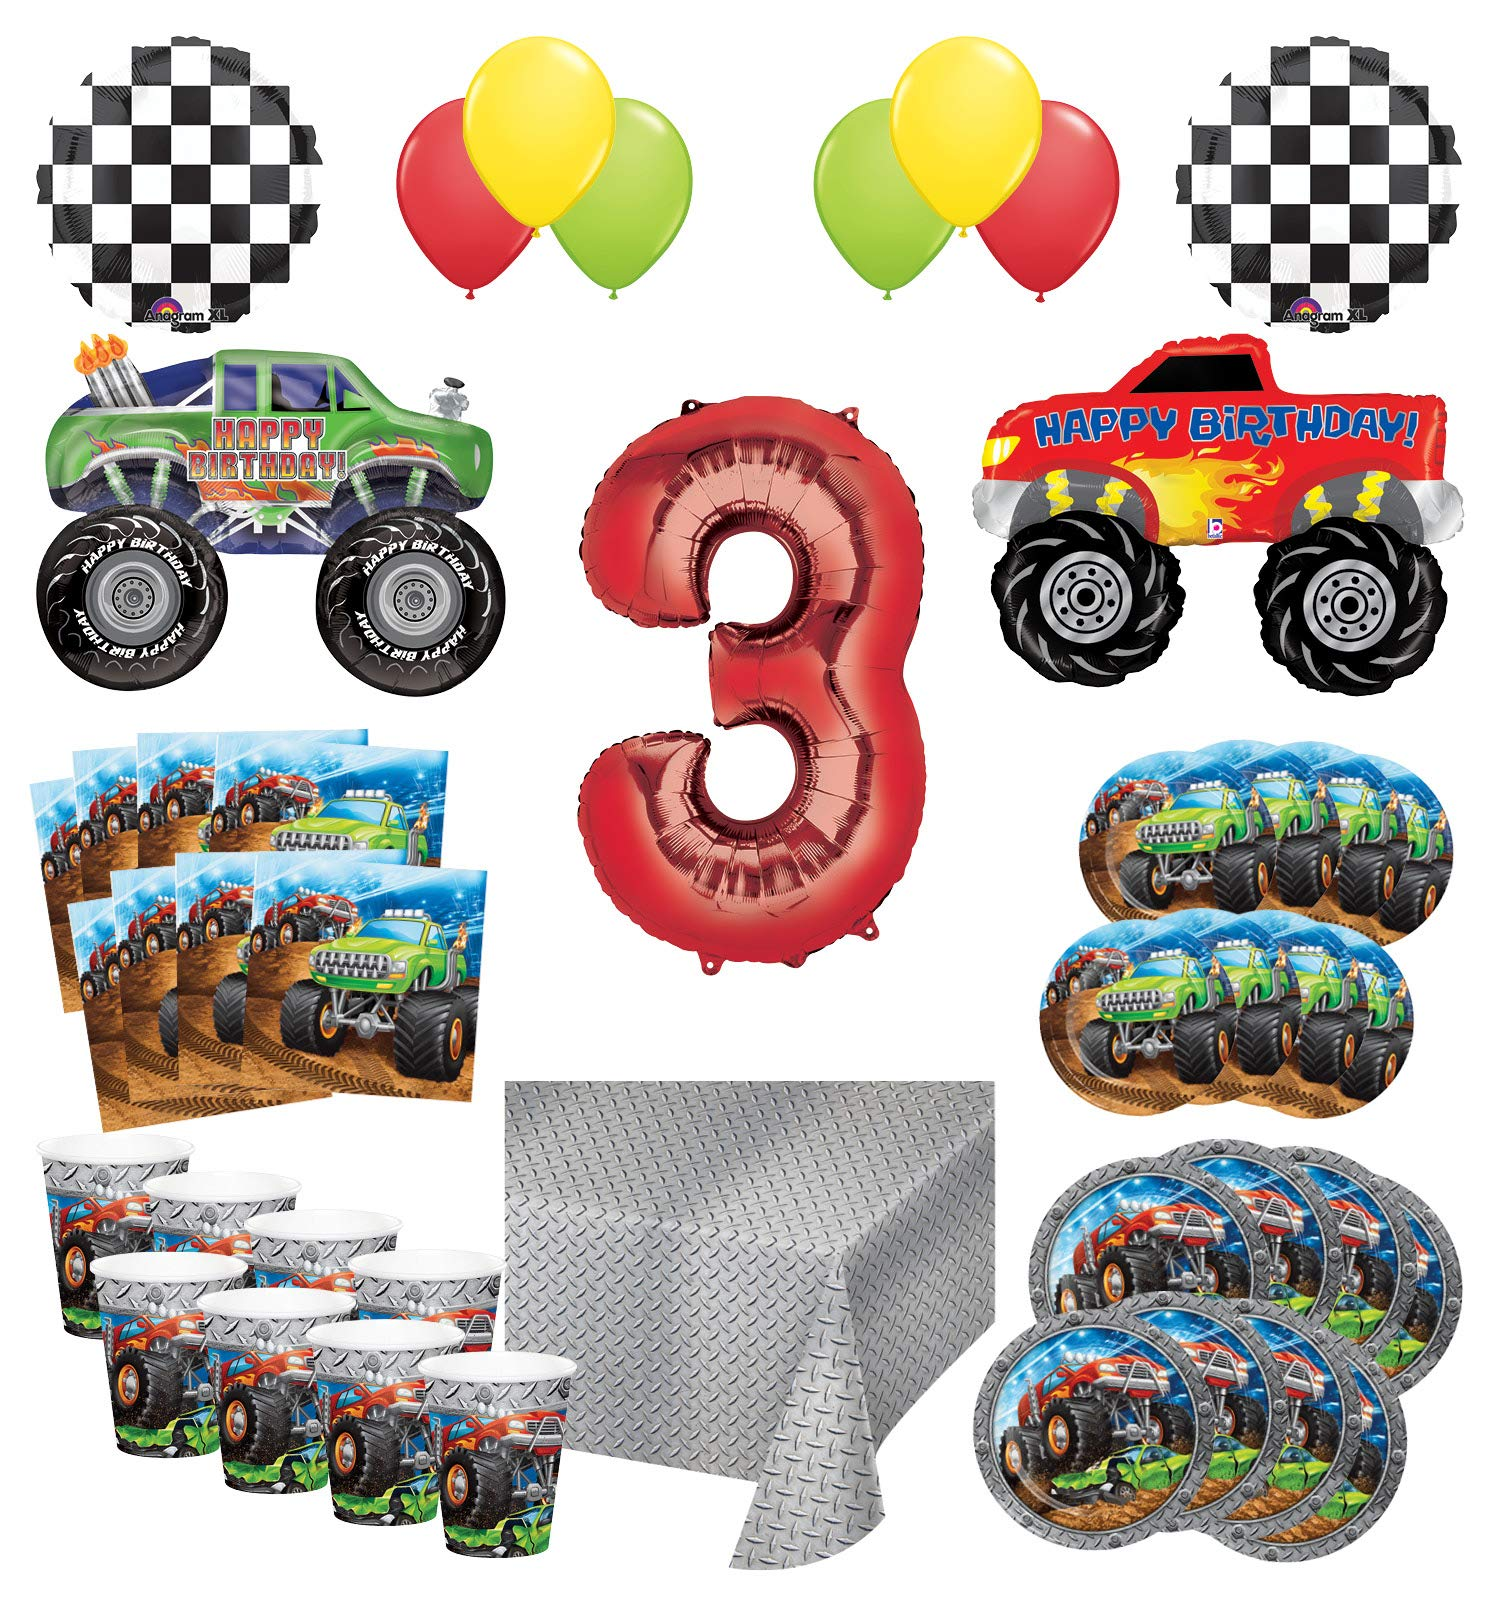 Mayflower Products Monster Truck Rally 3rd Birthday Party Supplies 16 Guest Decoration Kit with Green and Red Monster Truck Balloon Bouquet